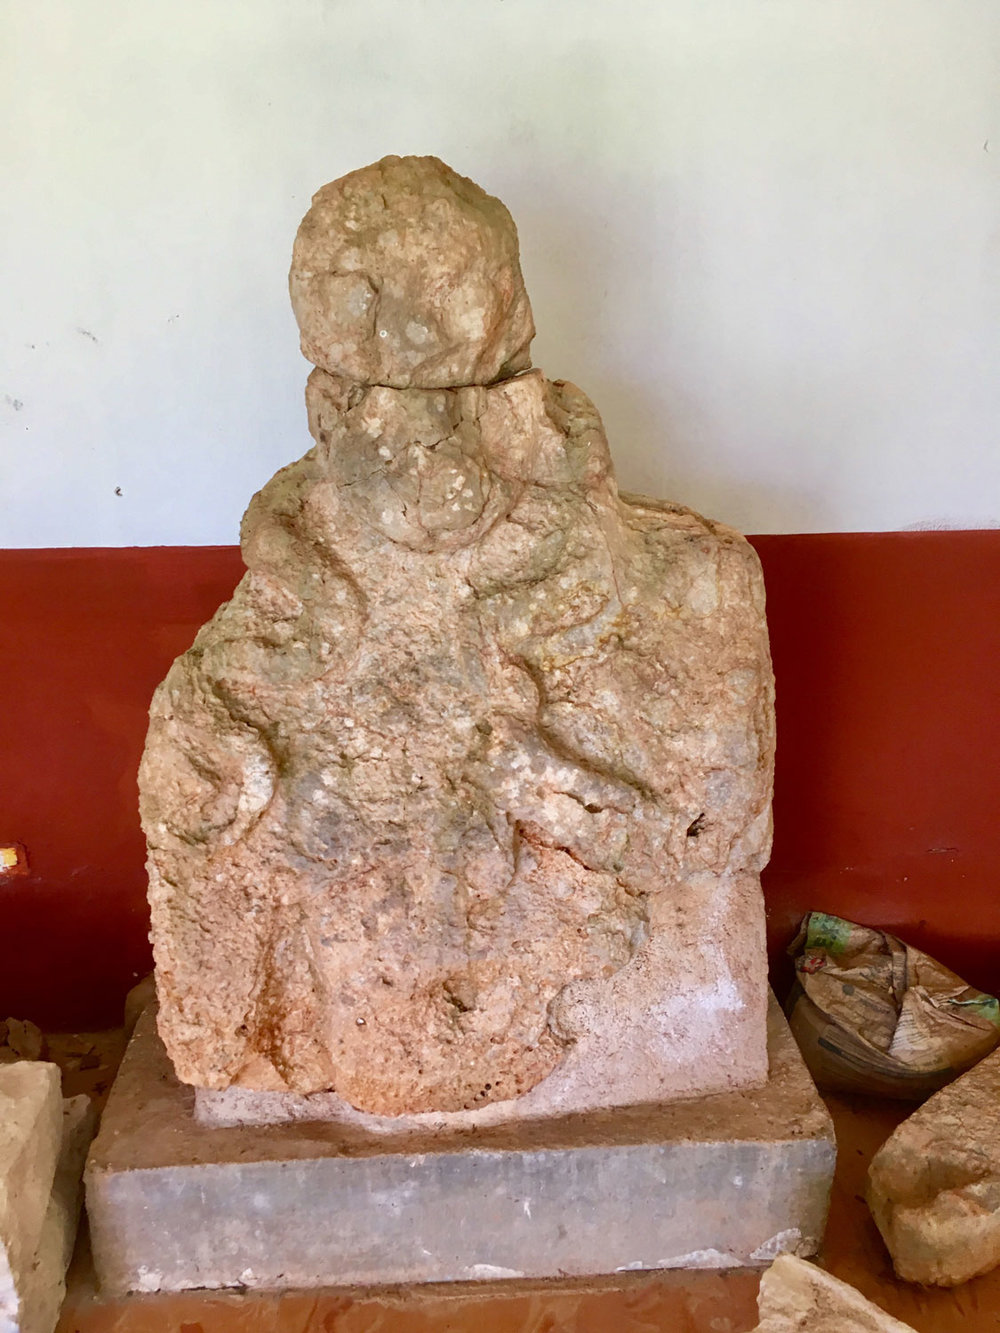 A sculpture of a ruler at Kabáh, placed near the entrance (by the restrooms). No name has been deciphered so far.